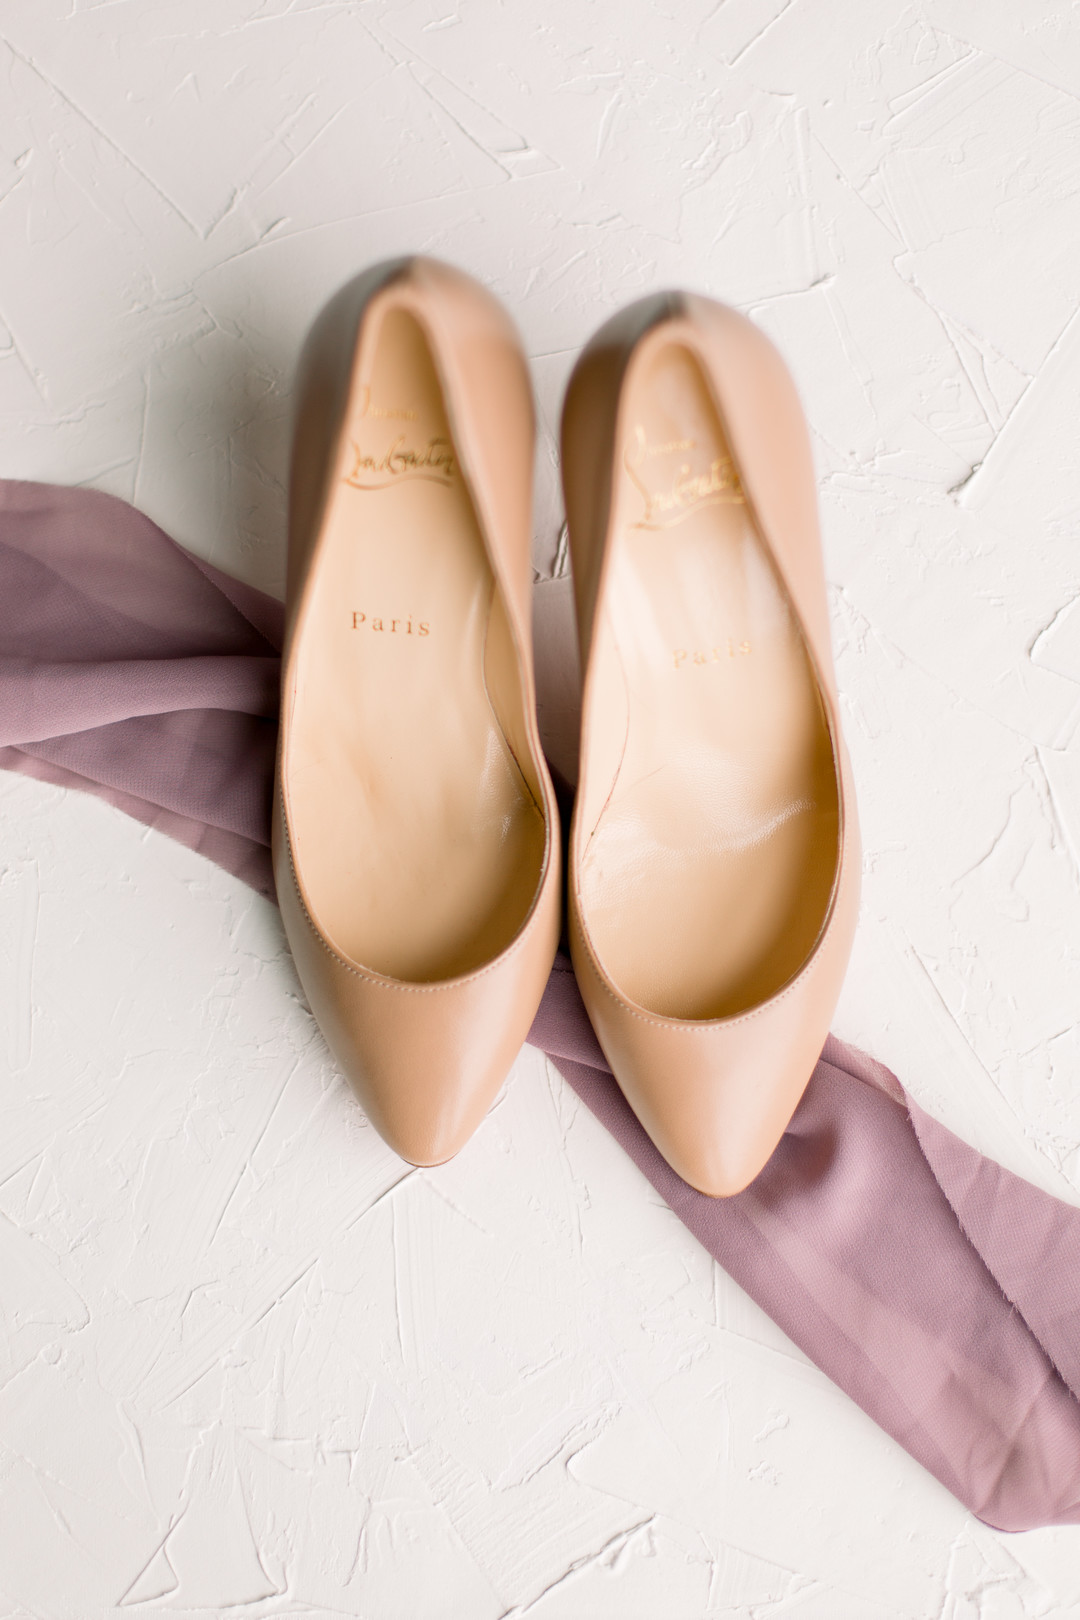 Louboutin wedding shoes: Spring wedding inspiration captured by Nicole Morisco Photography. Find more spring wedding ideas at CHItheeWED.com!